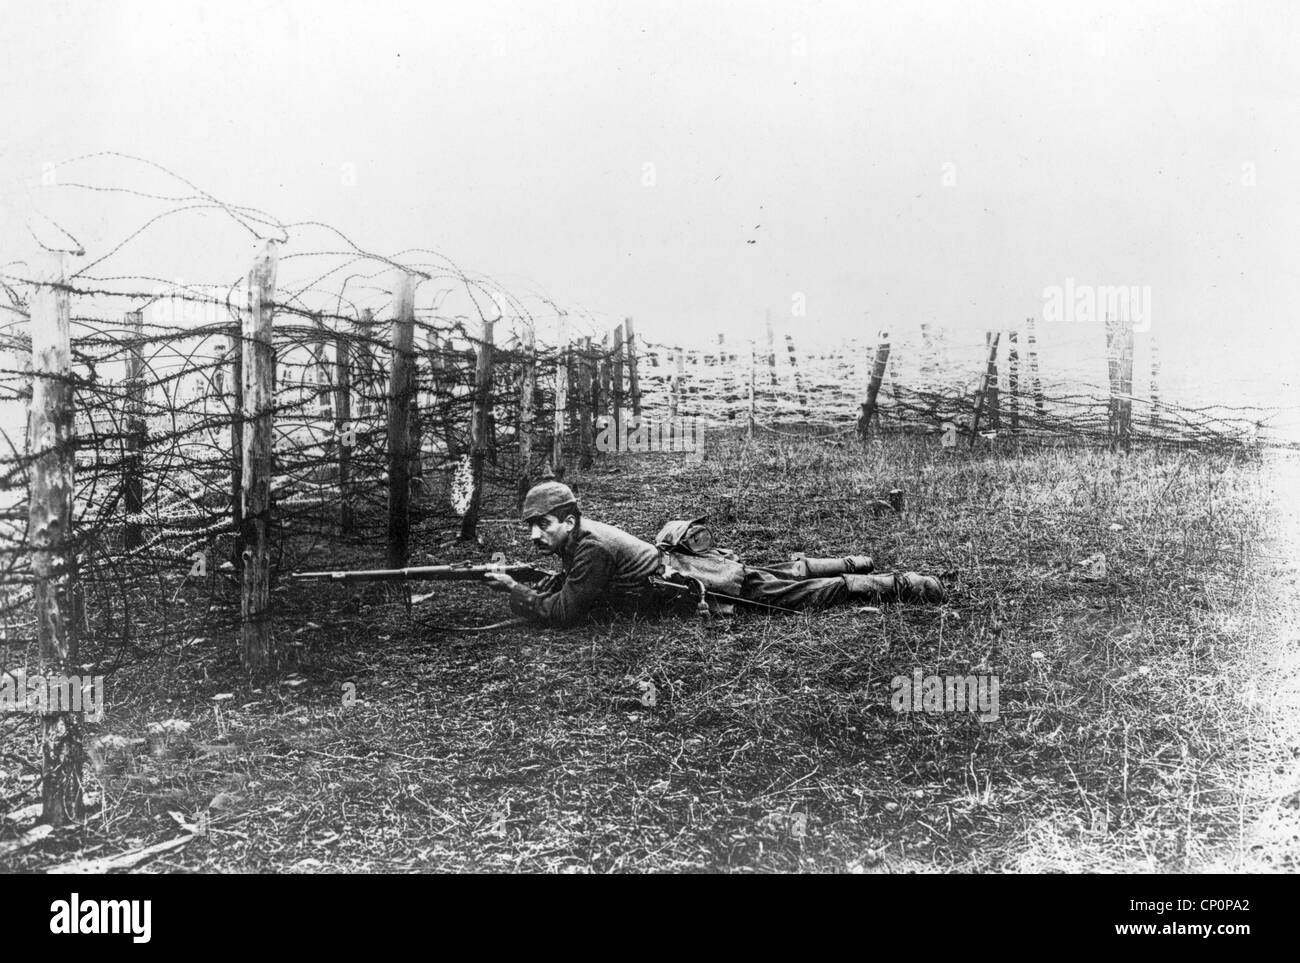 German sniper laying on ground near barbed wire defenses, World War One - Stock Image